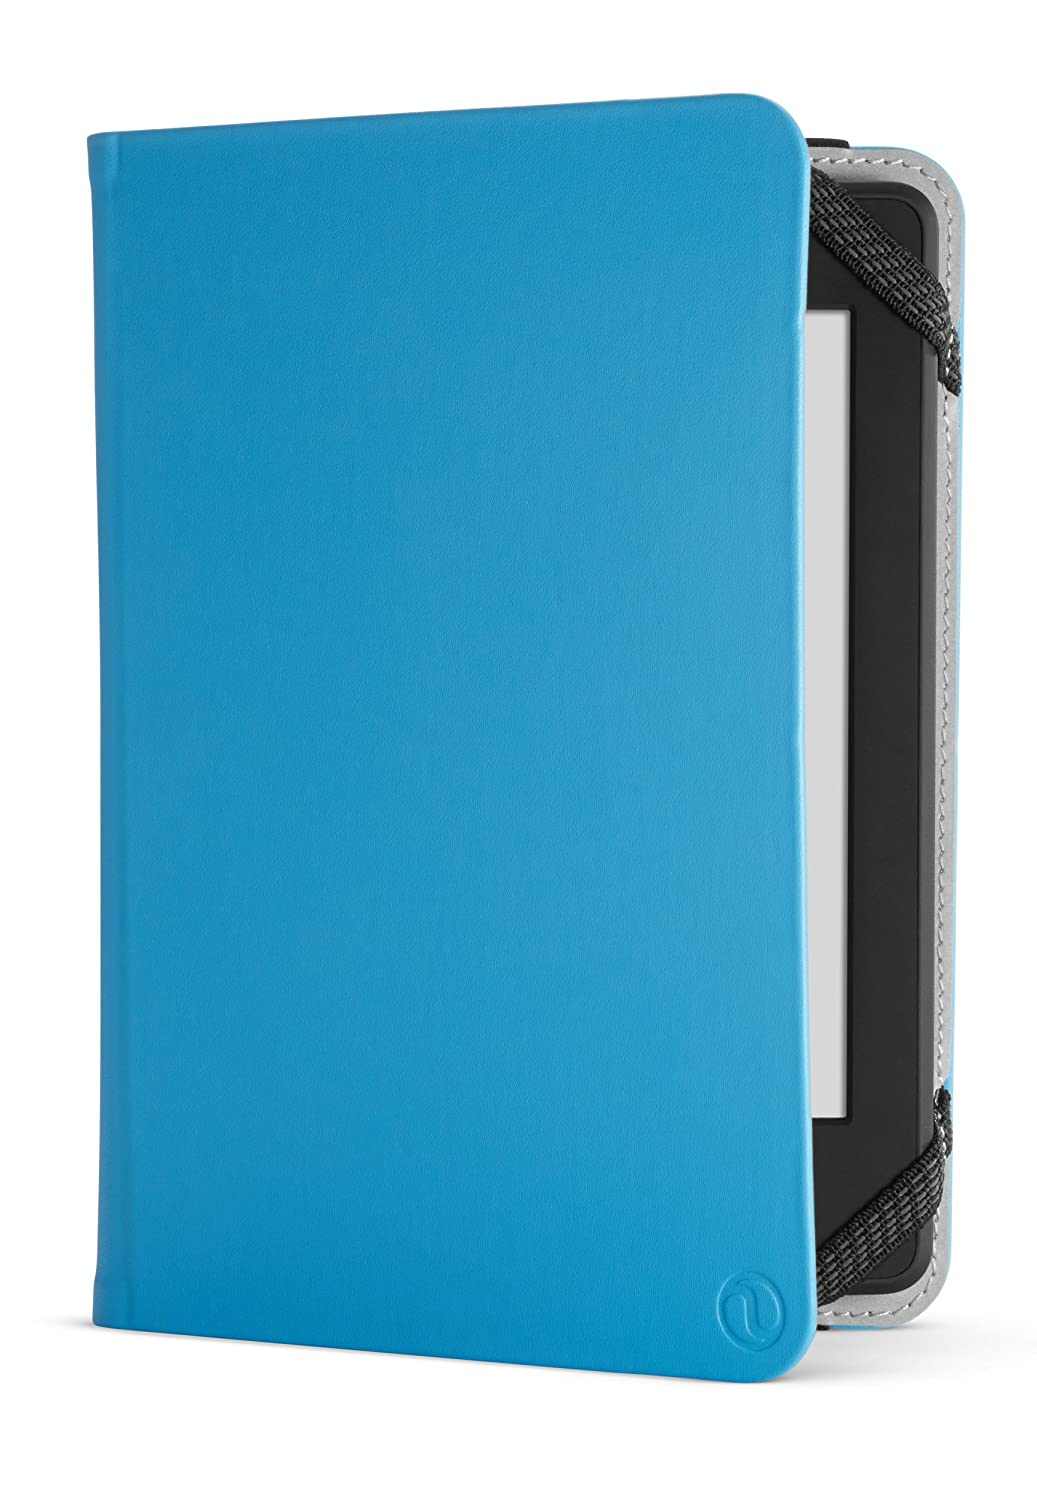 NuPro Amazon Kindle Paperwhite Case - Lightweight Durable Slim Folio Cover (fits Kindle and Kindle Paperwhite), Blue